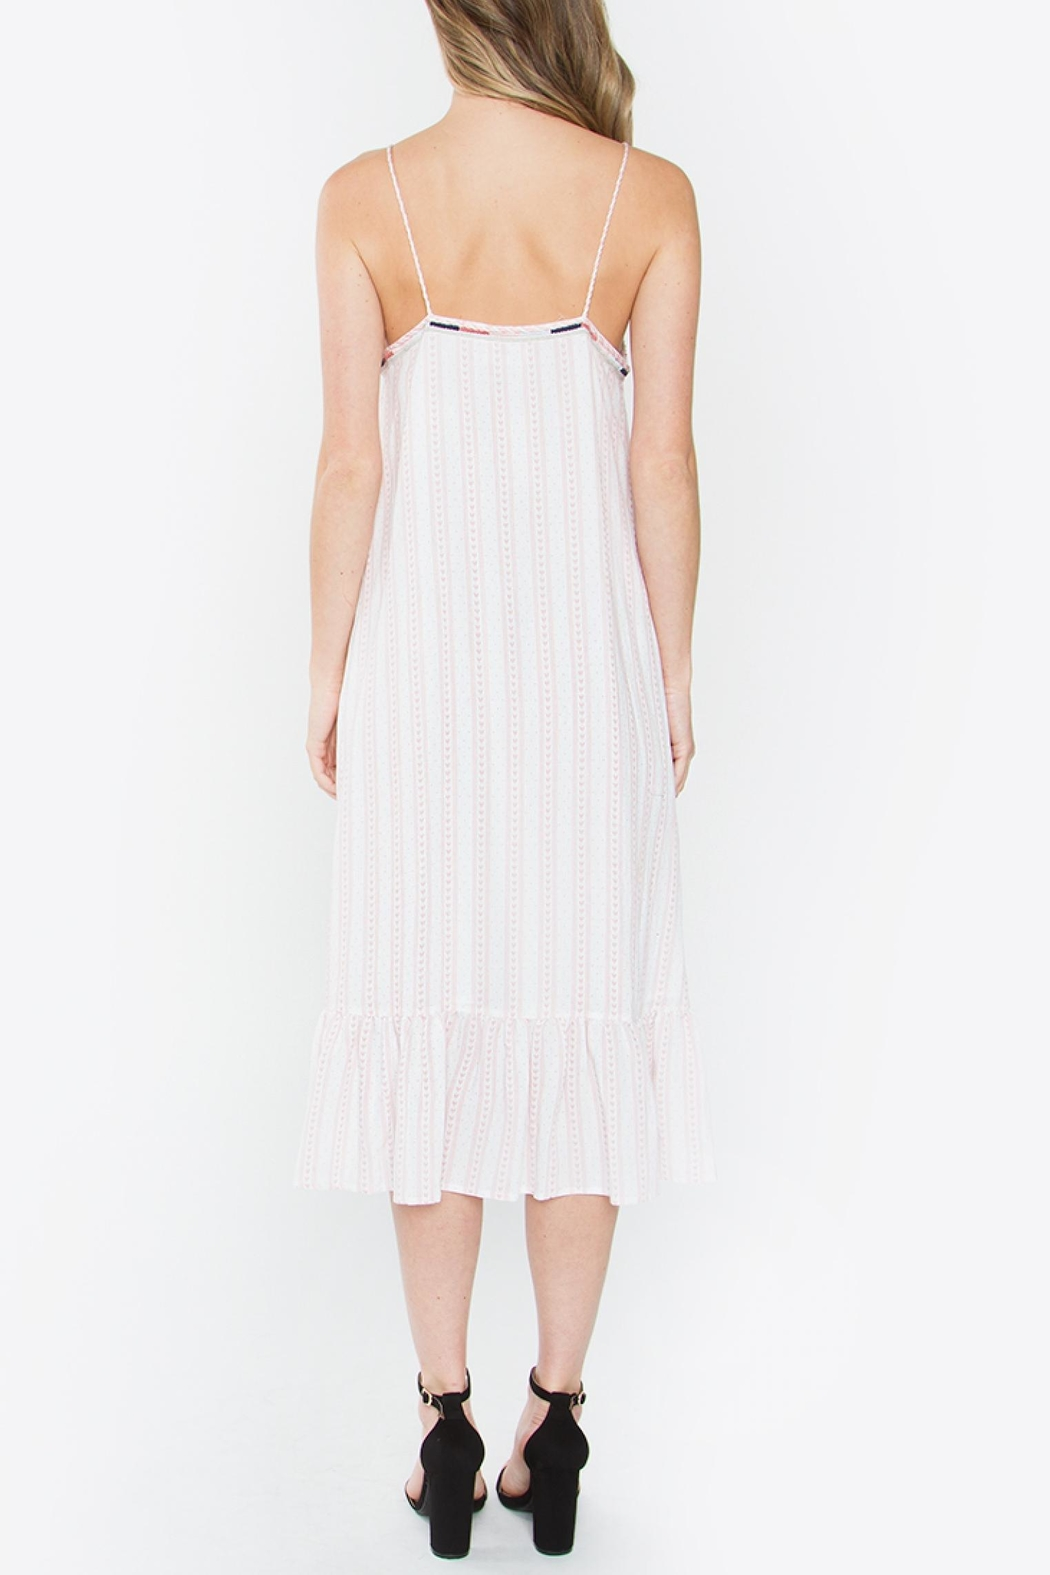 Sugarlips Libby Midi Dress - Side Cropped Image